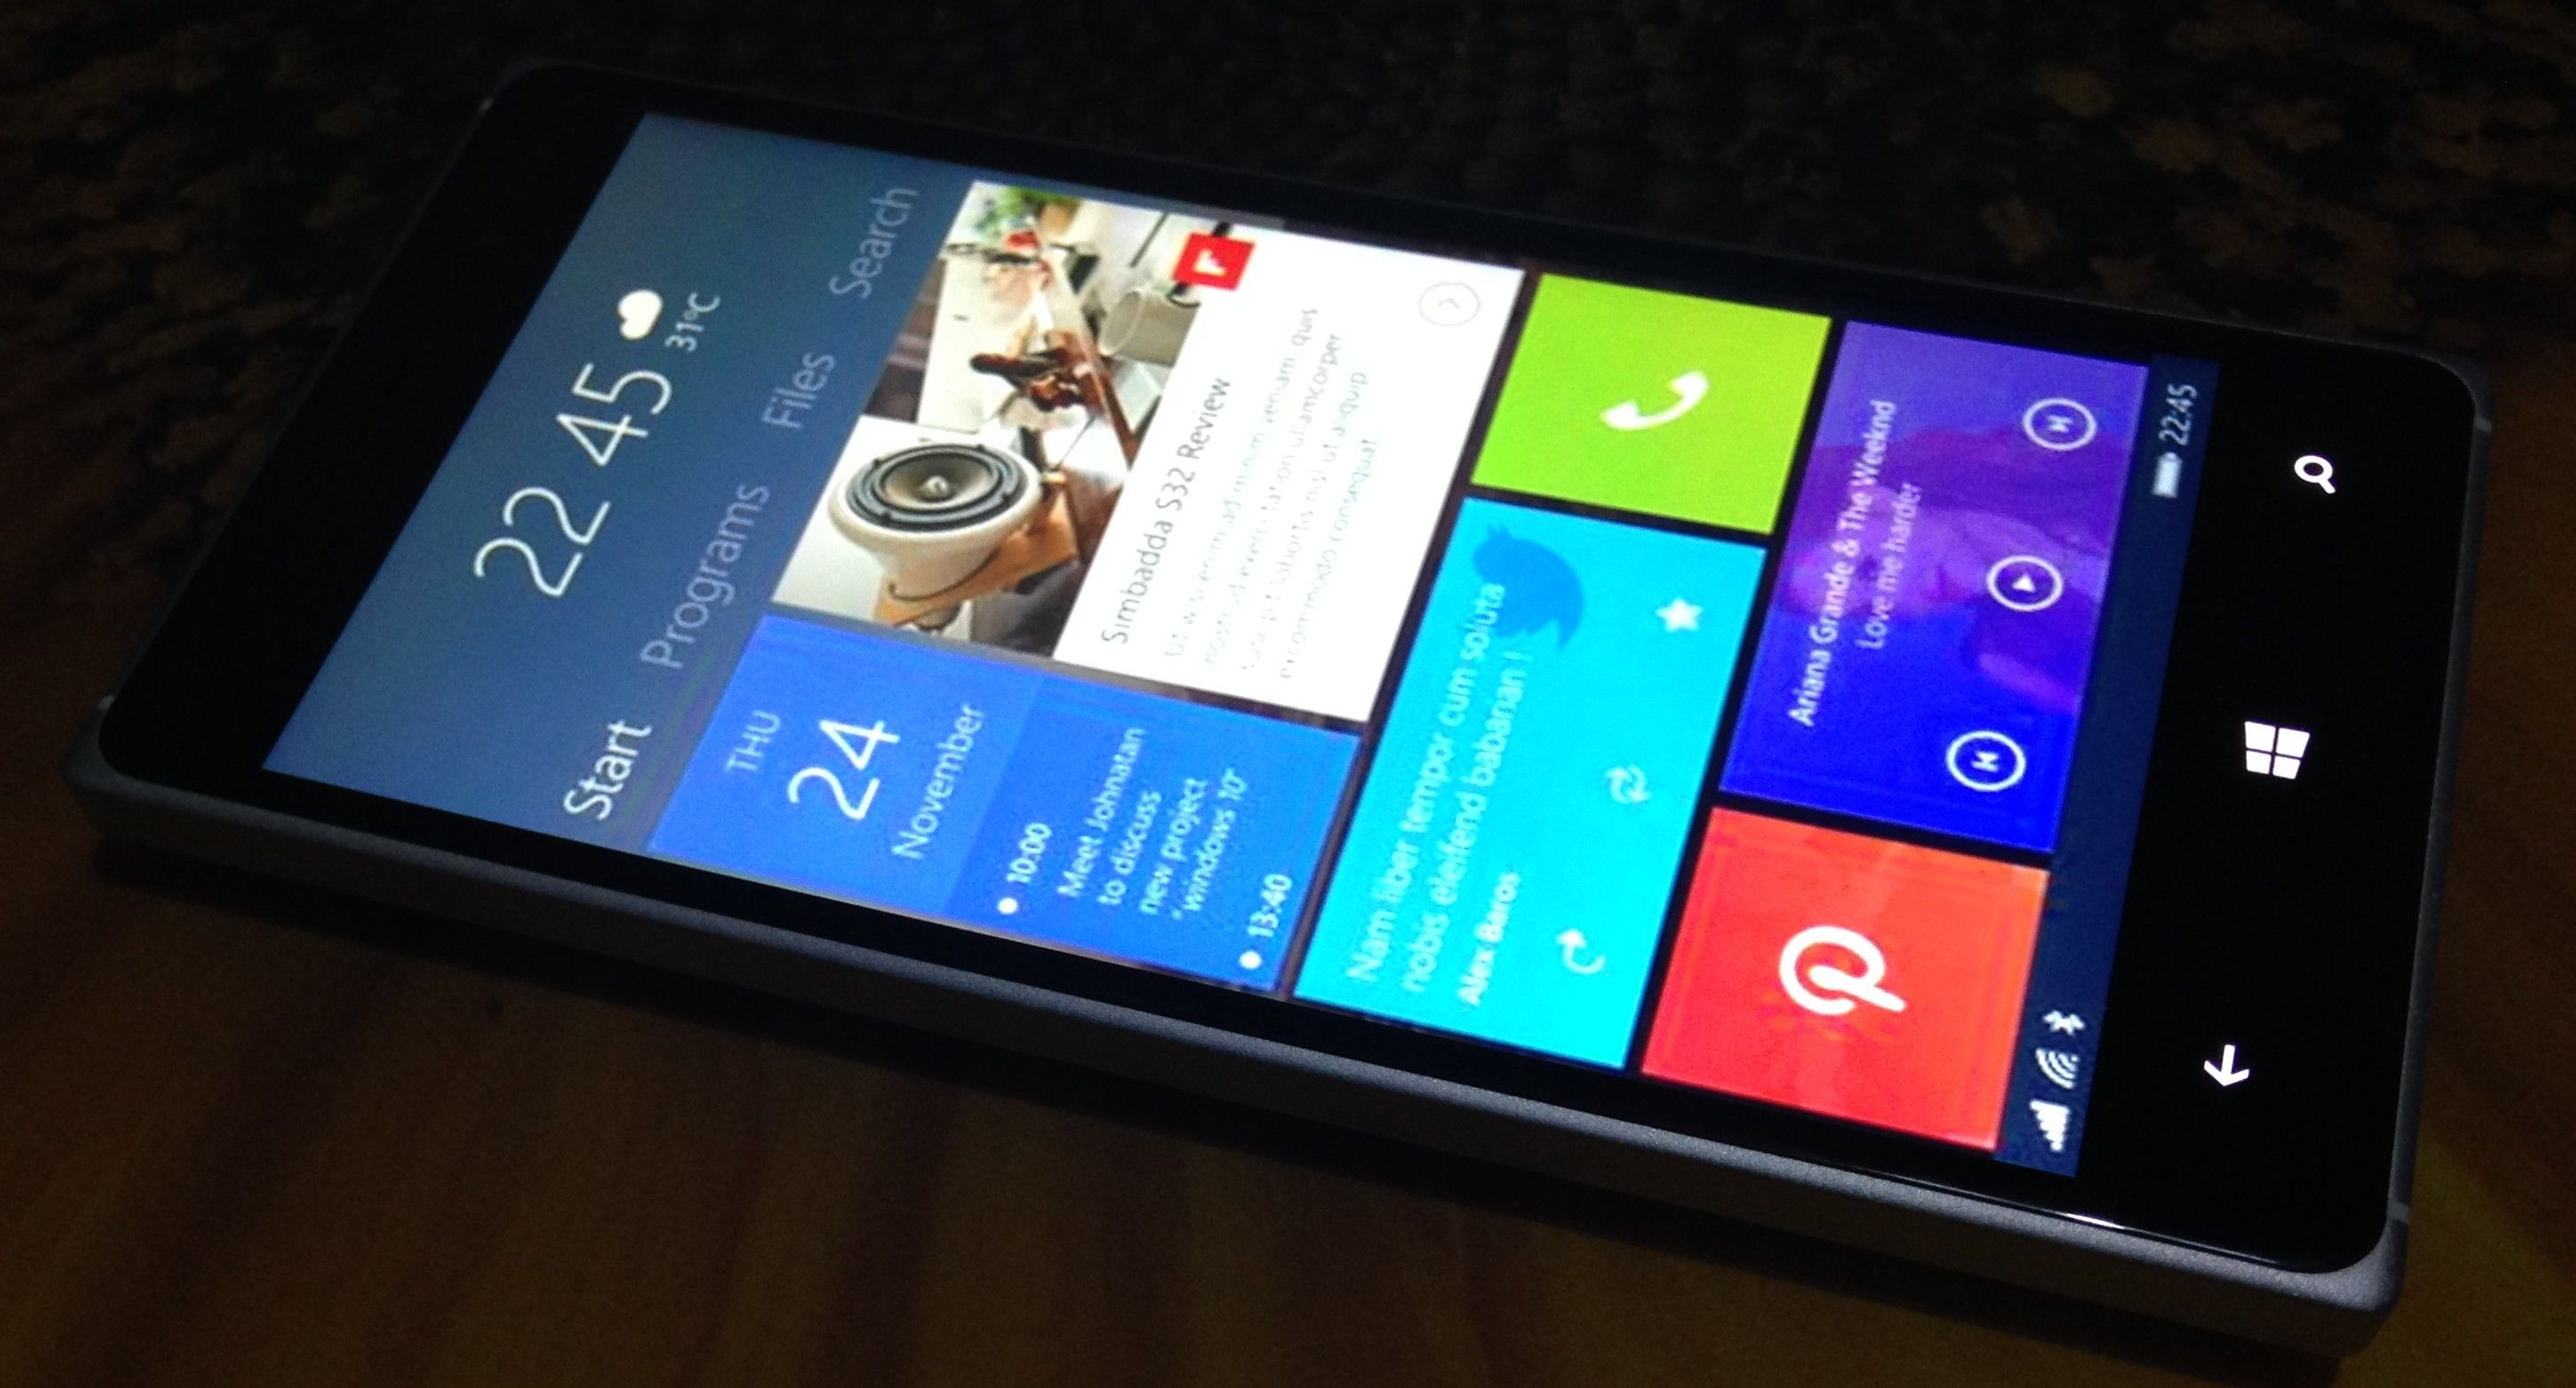 windows-10-mobile-update.jpg